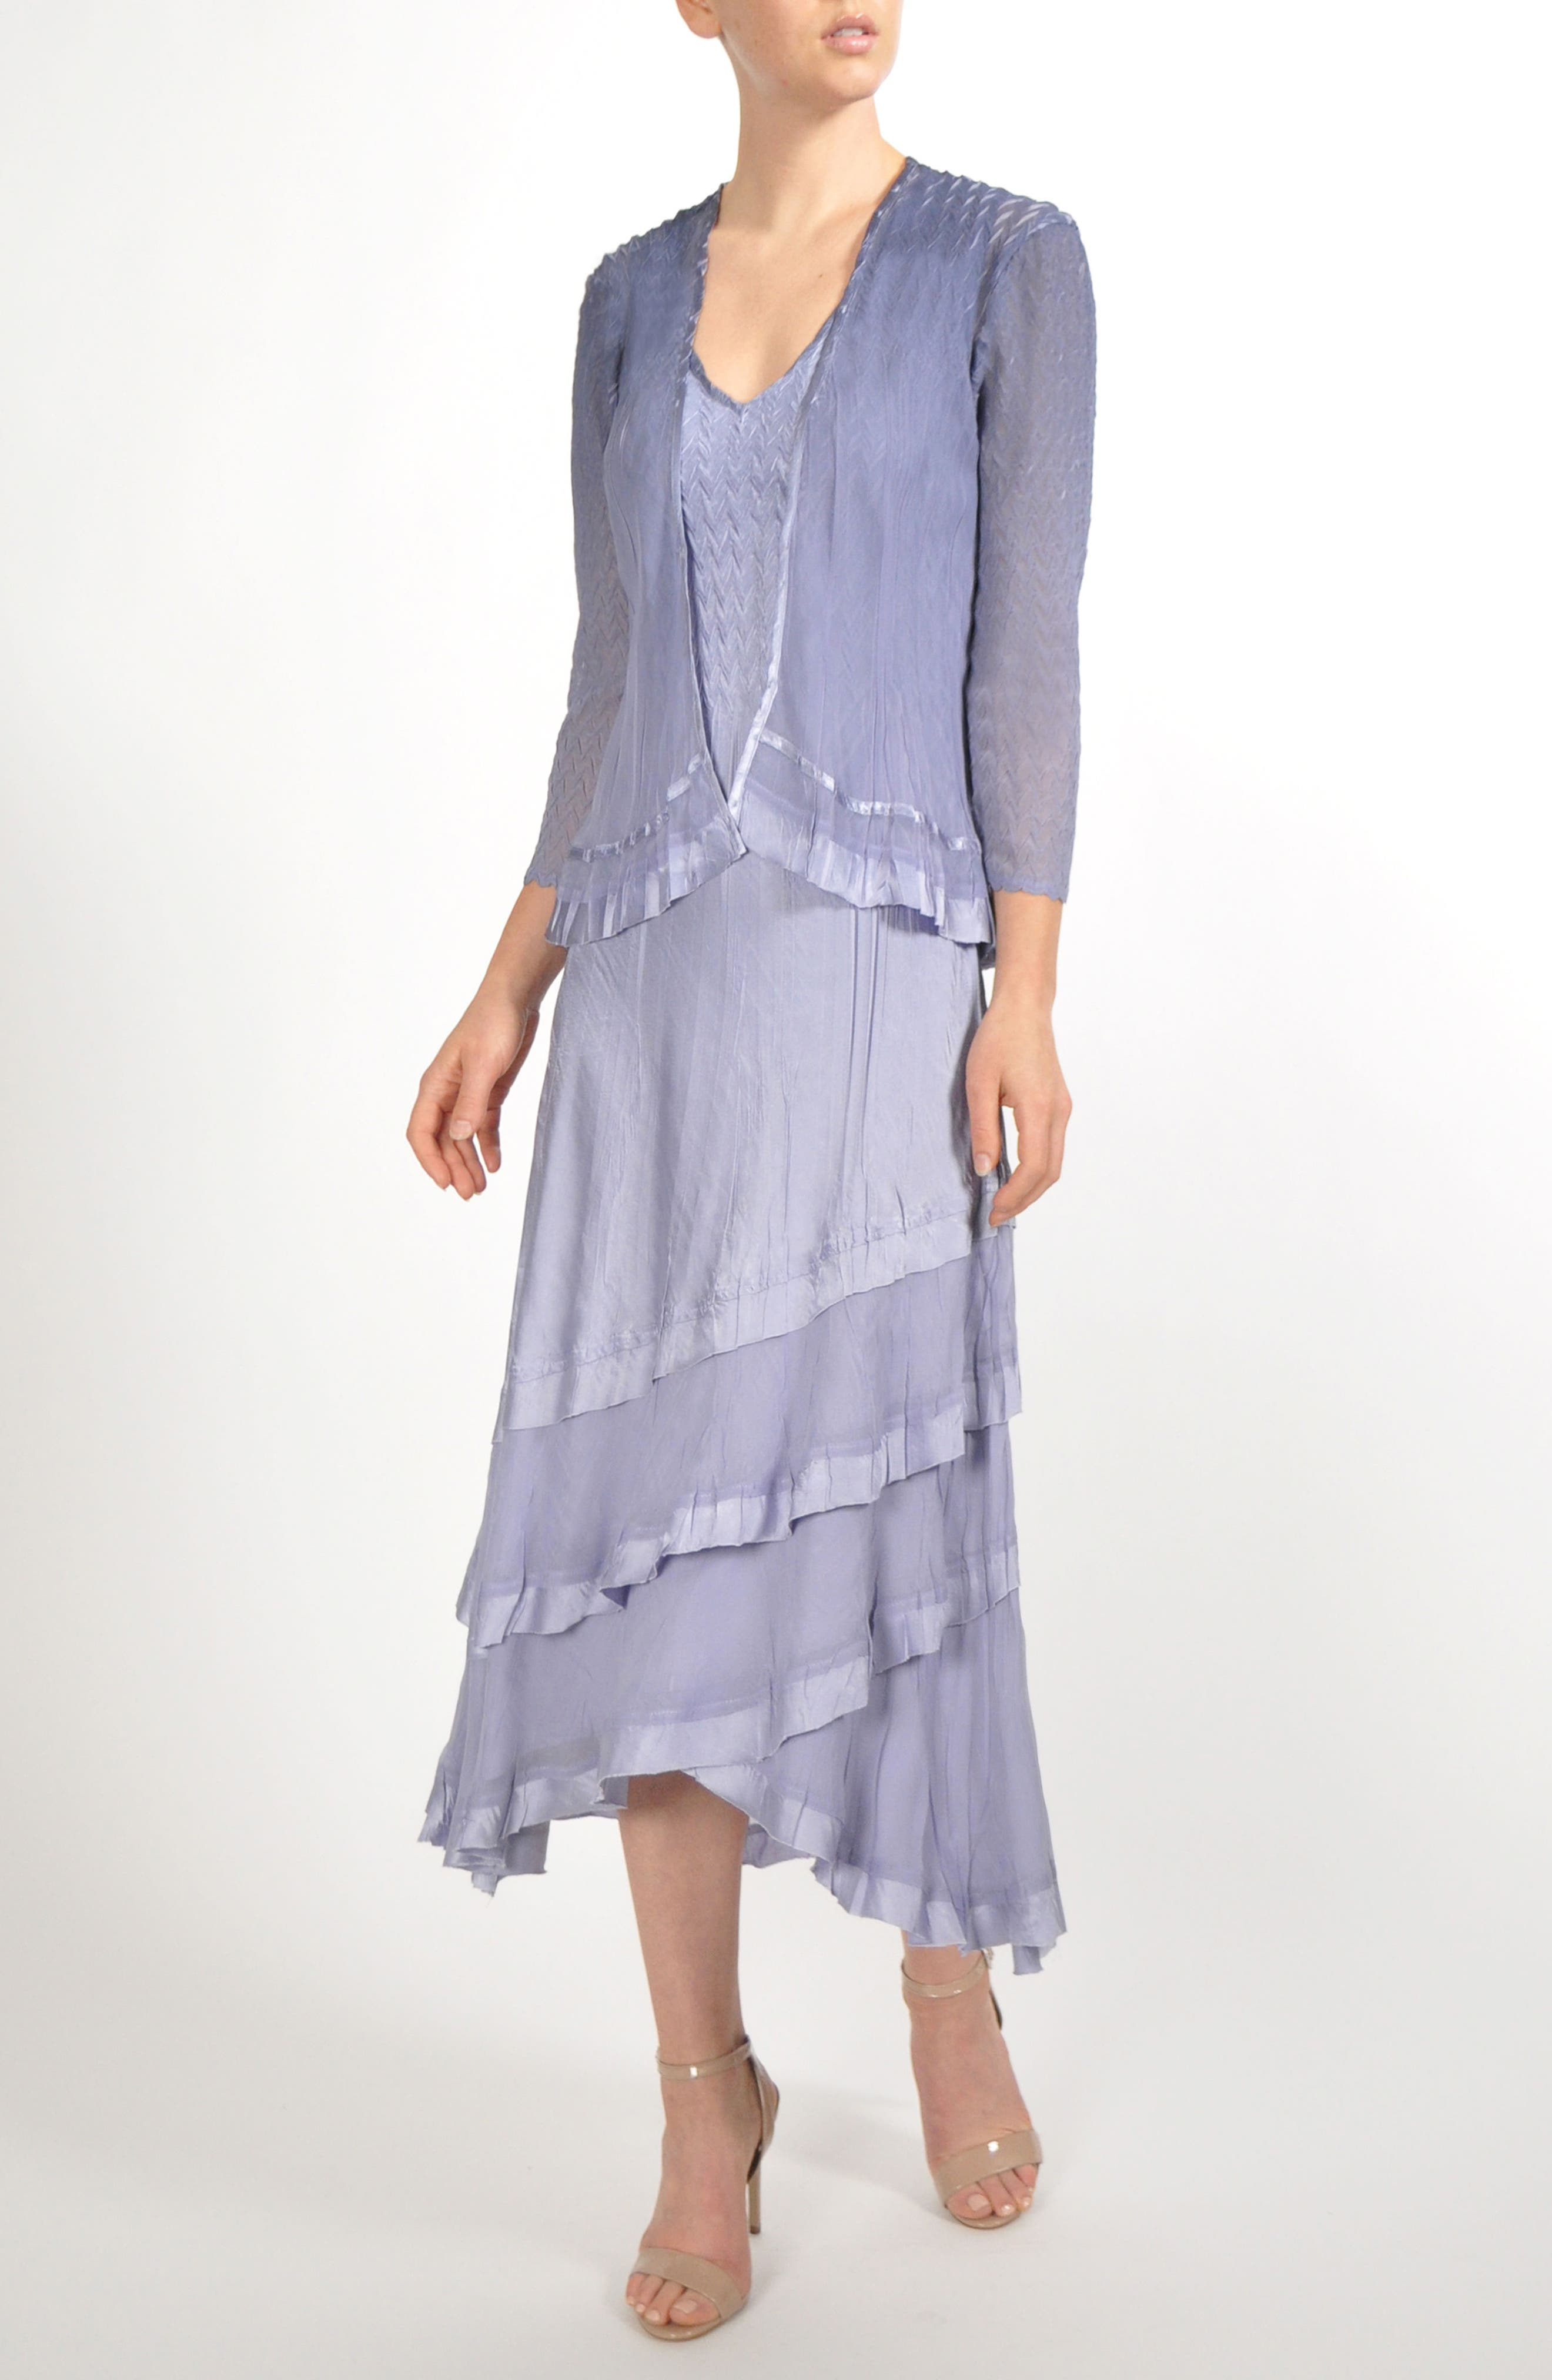 Charmeuse & Chiffon Tiered Hem Dress with Jacket,                         Main,                         color, Lavender Grey Blue Ombre